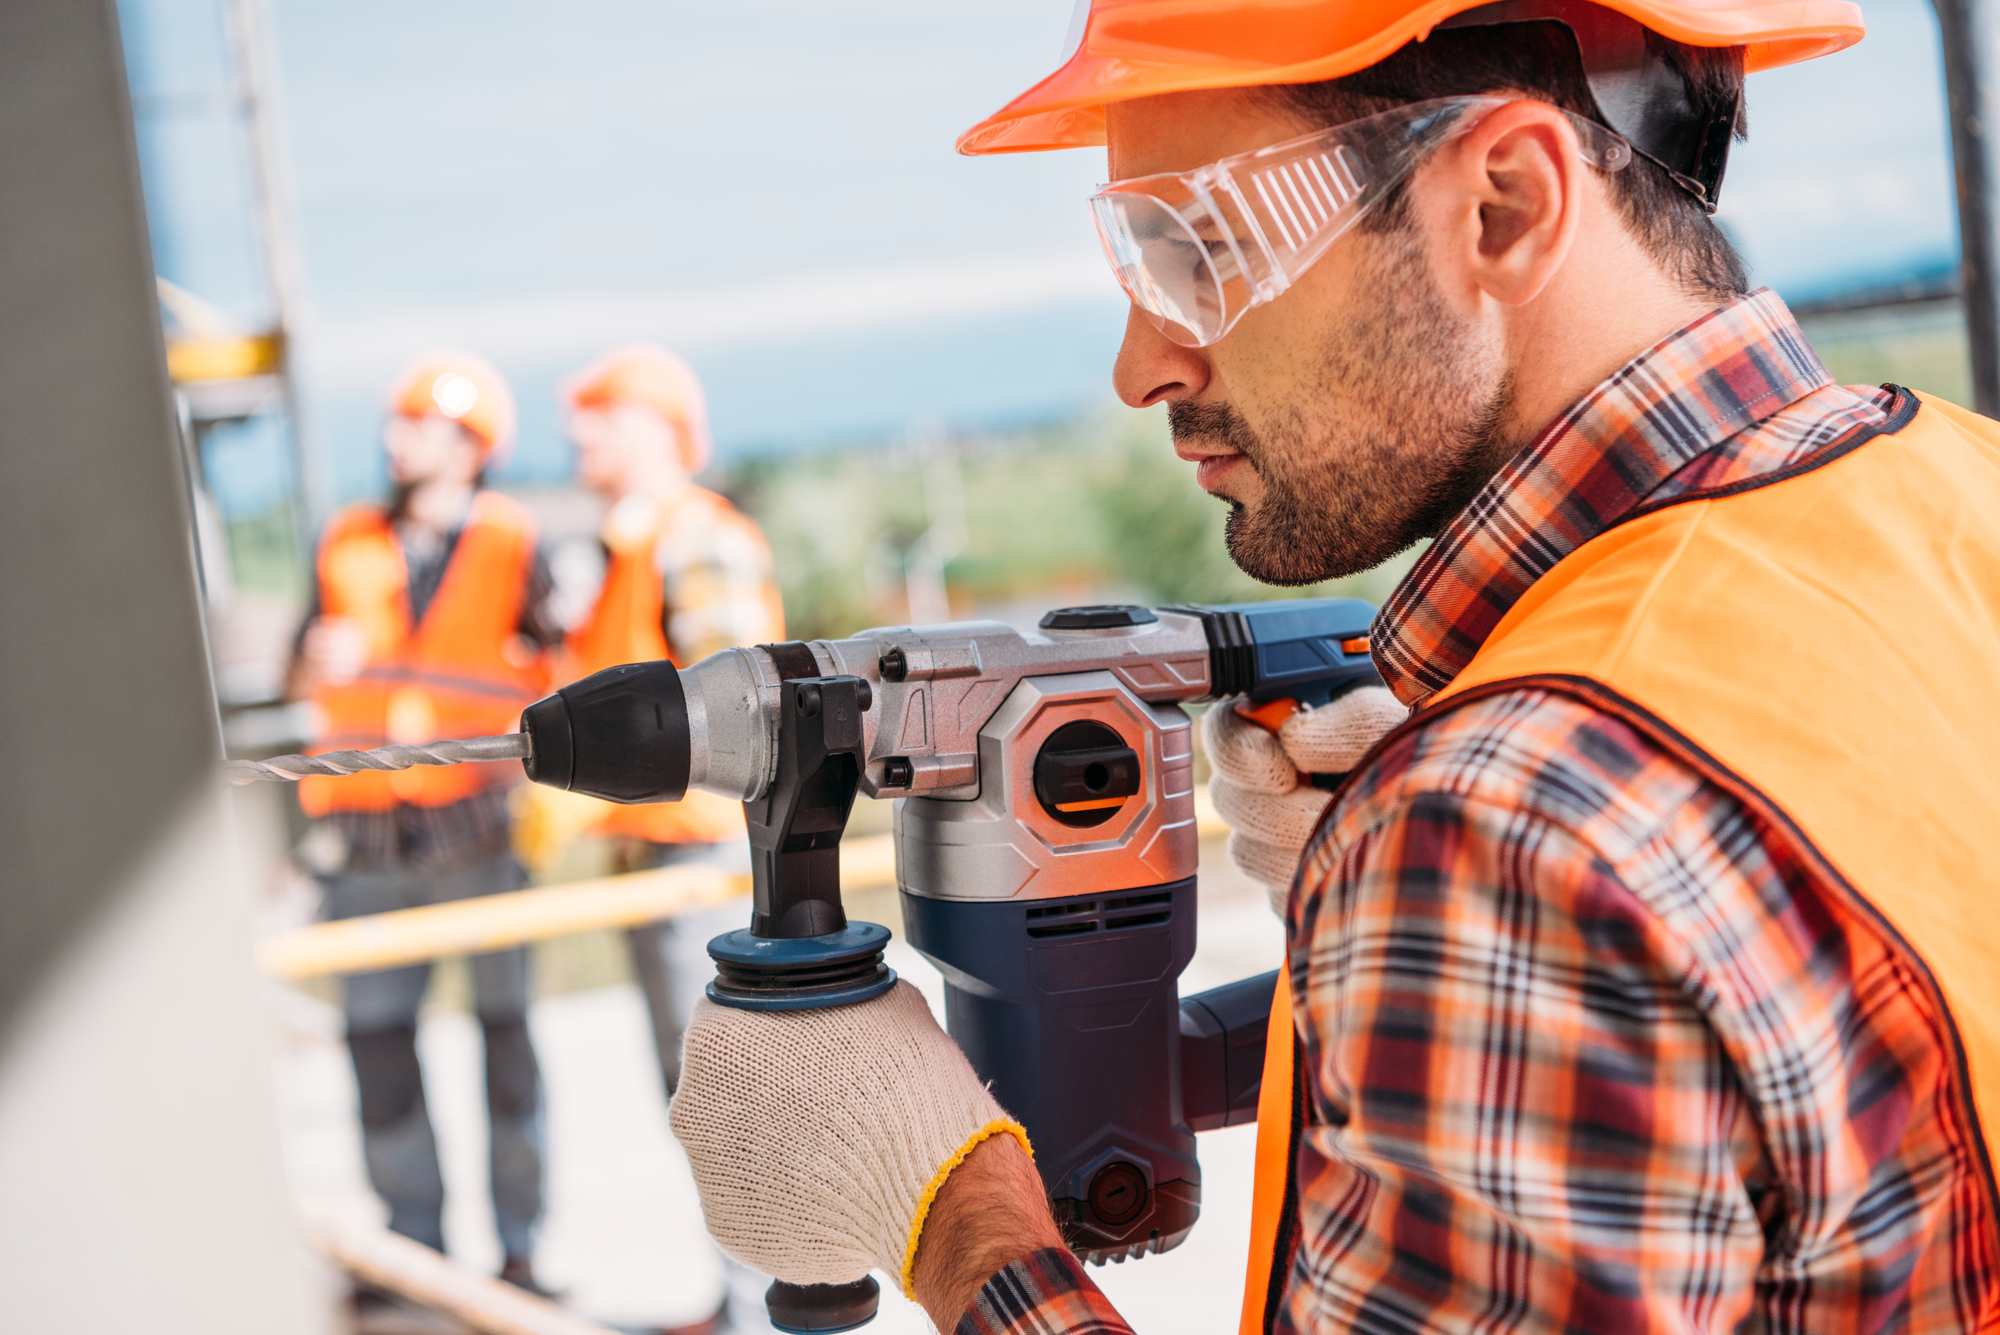 State Center Community College District and Associated Builders and Contractors Northern California Chapter to host July 11 Job Fair for recent Building Trades Boot Camp graduates